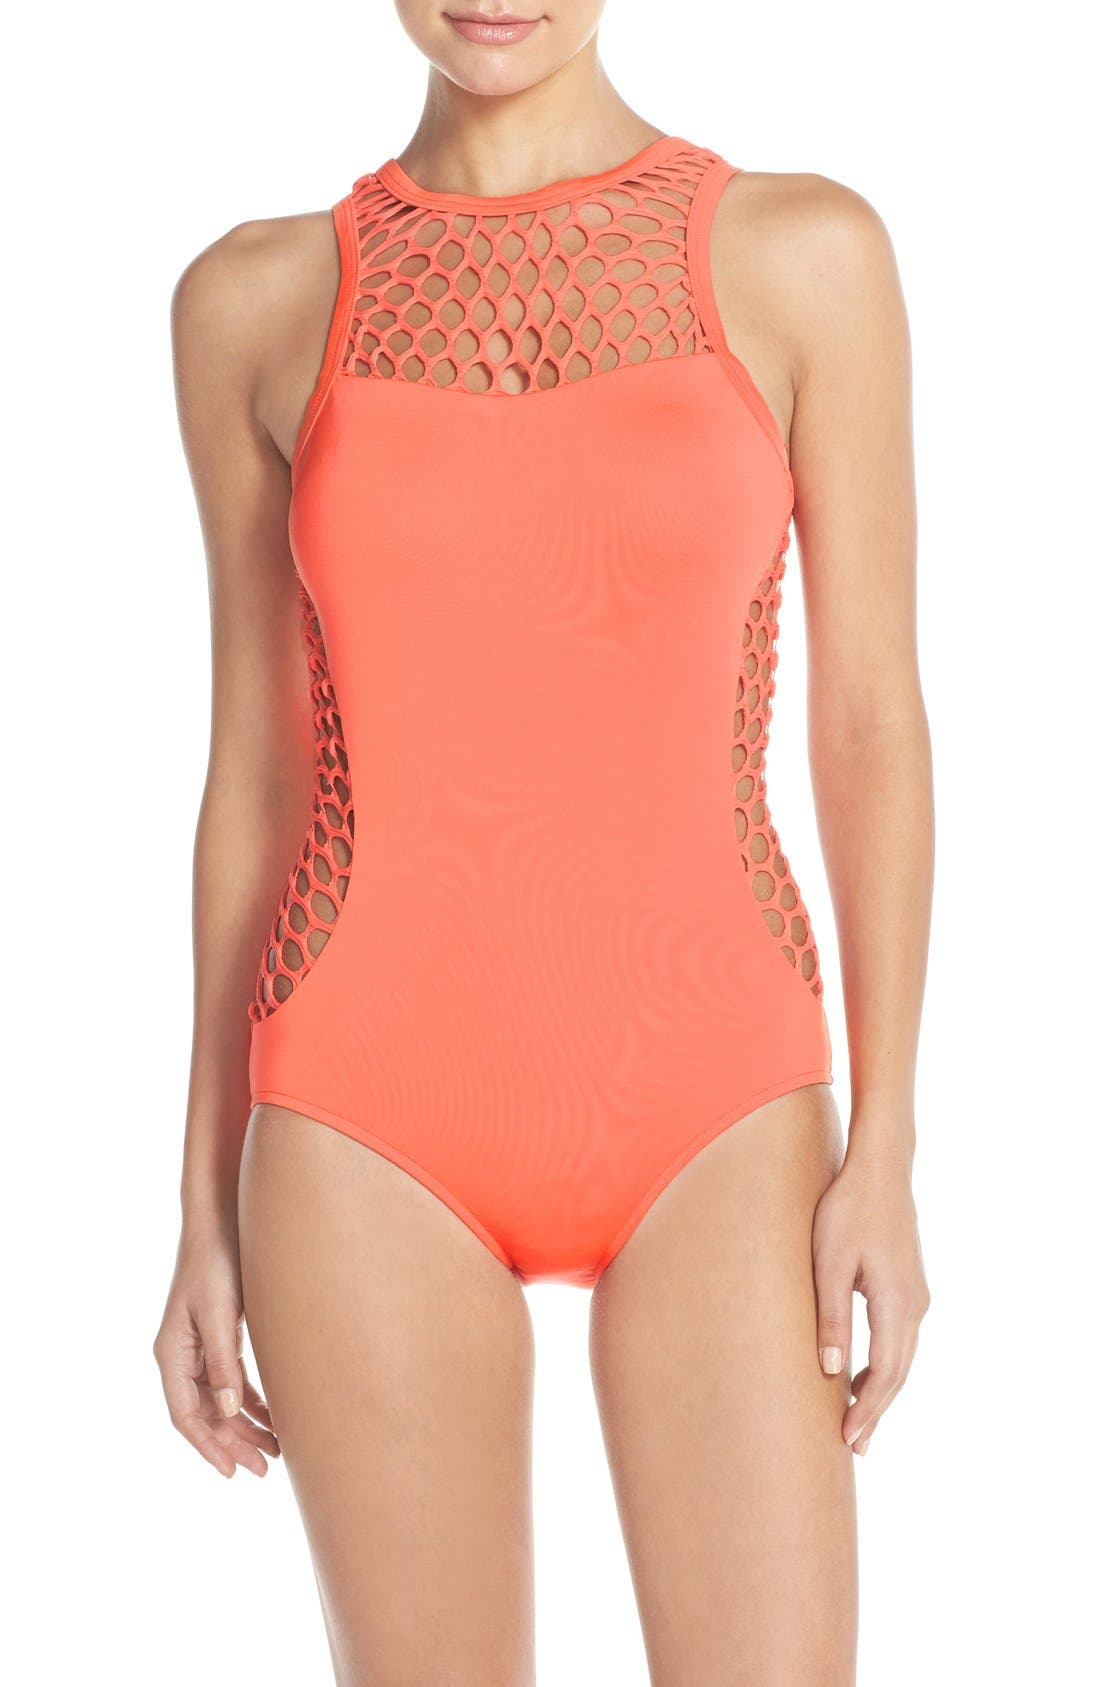 Main Image - Seafolly 'Mesh About' High Neck One-Piece Swimsuit